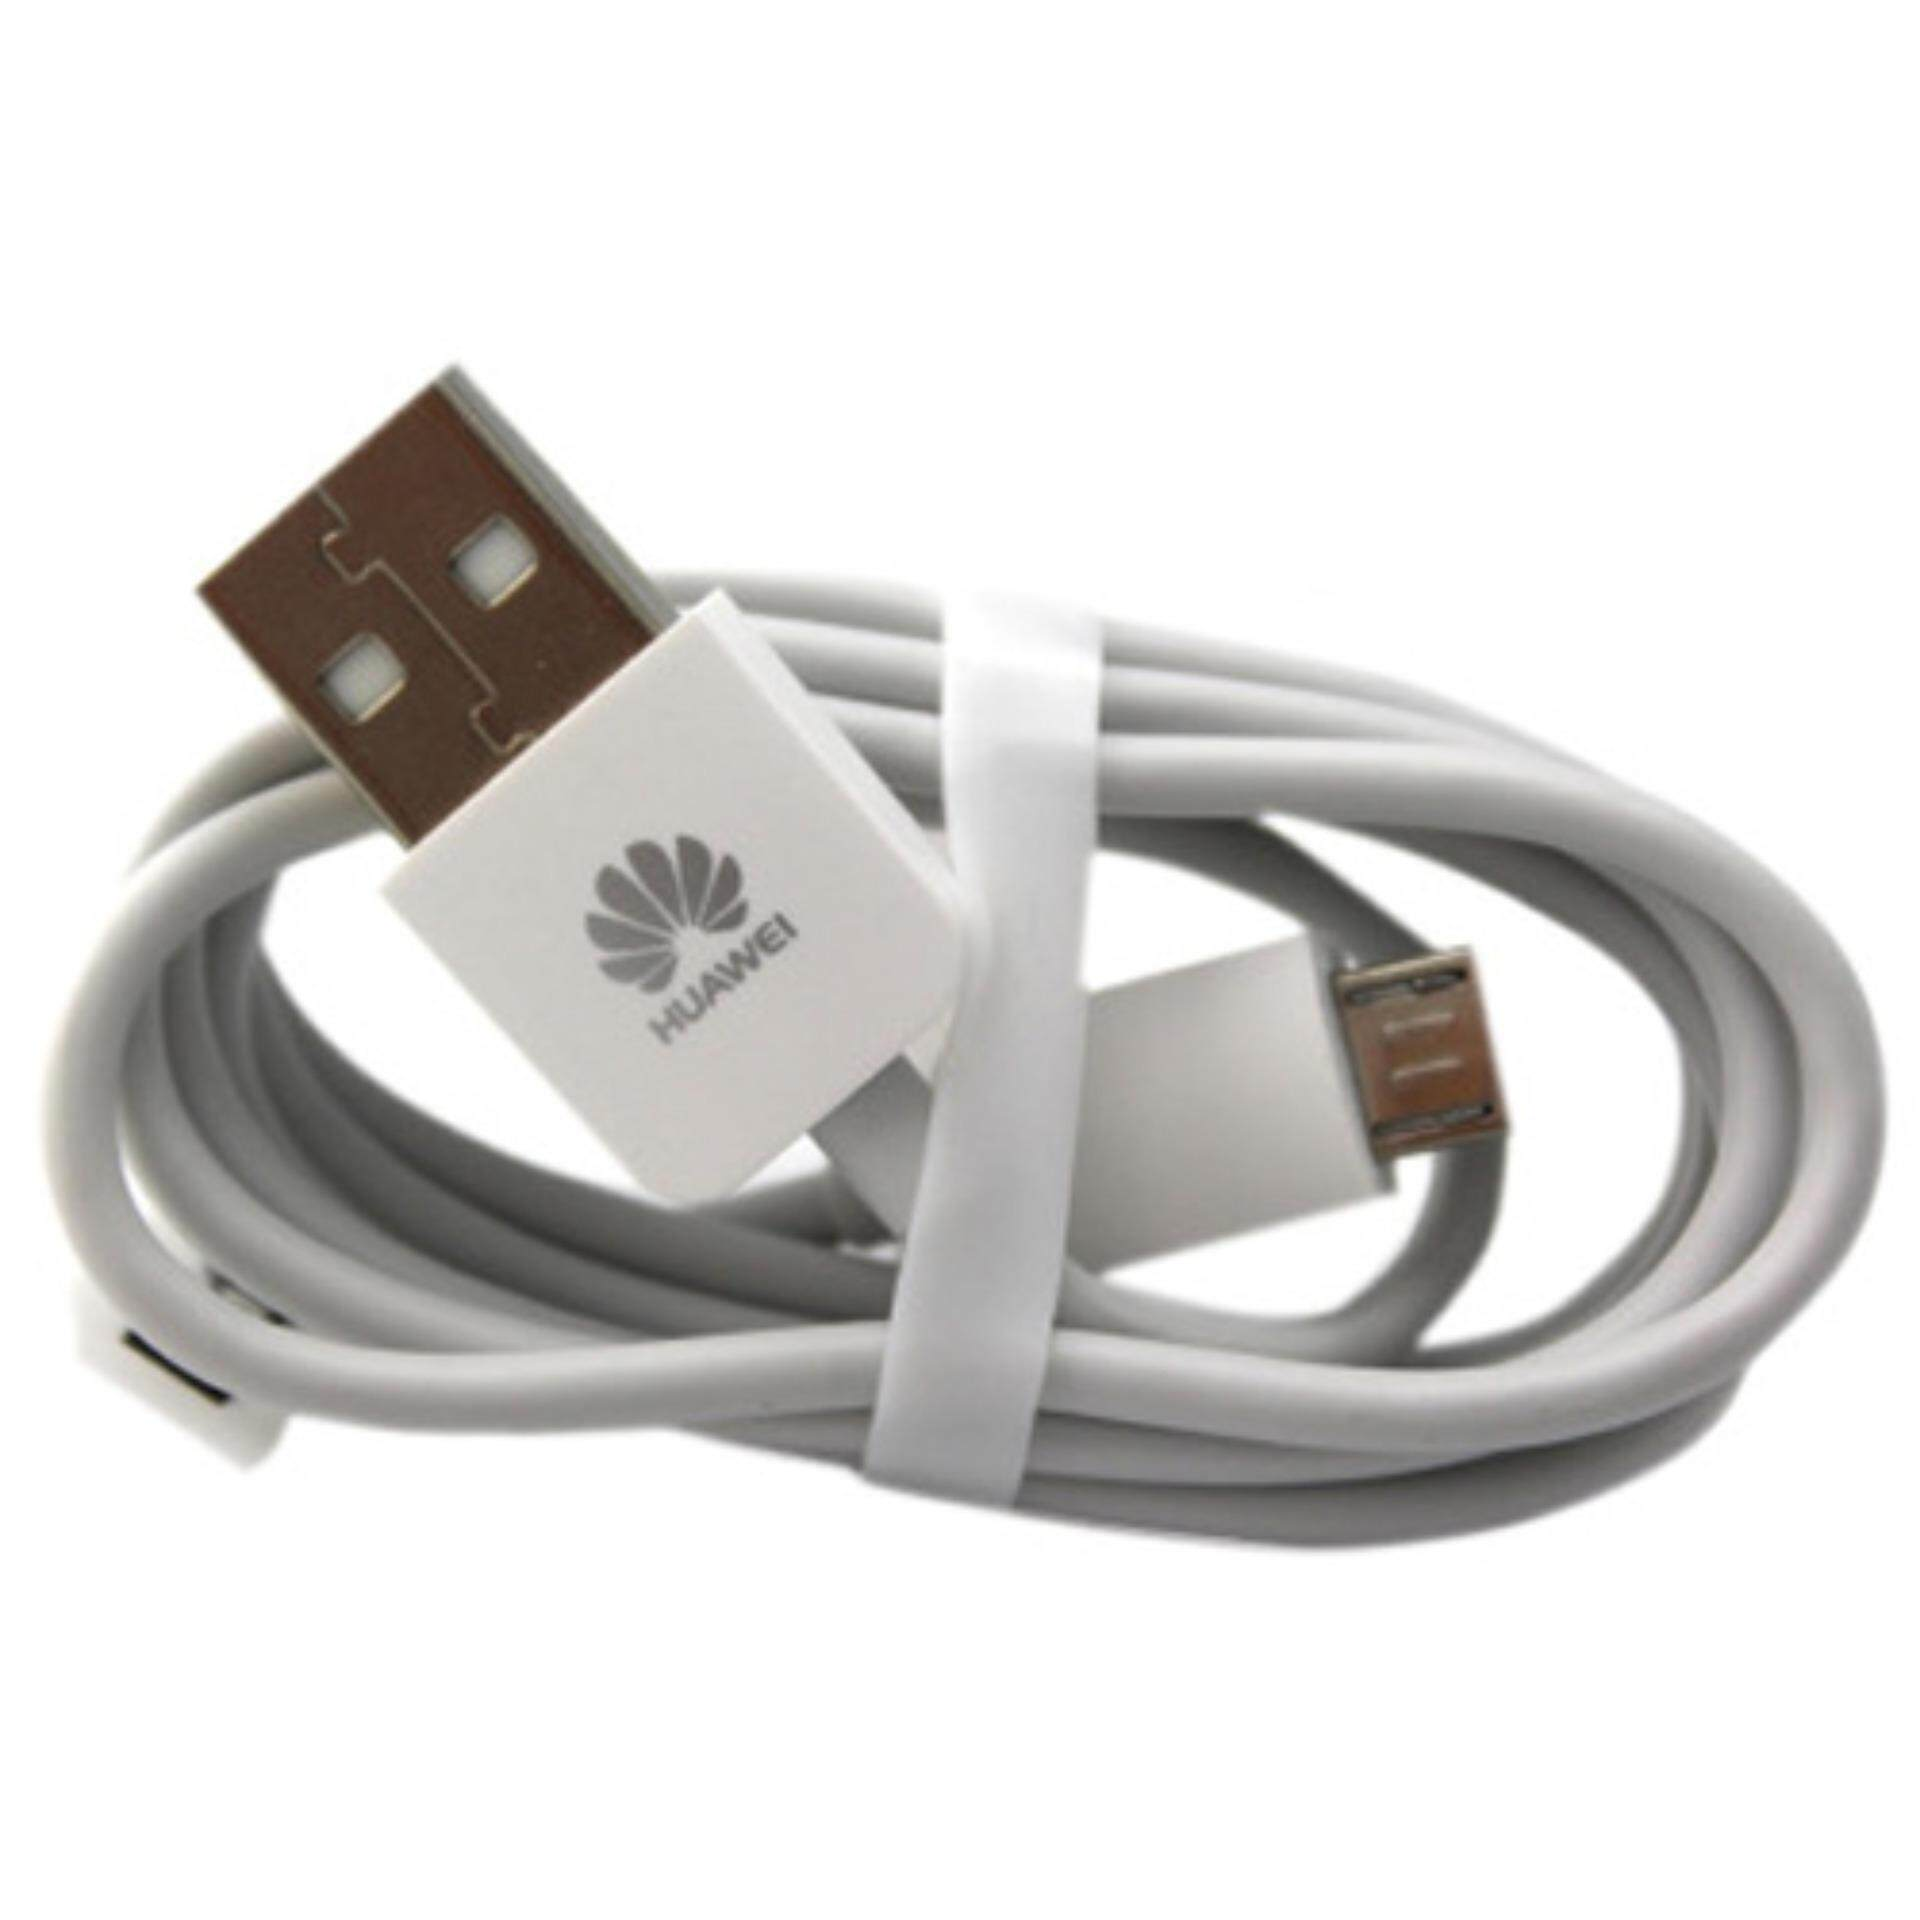 Huawei Mobile Phone Charger Micro USB Cable 1A (T9-6)